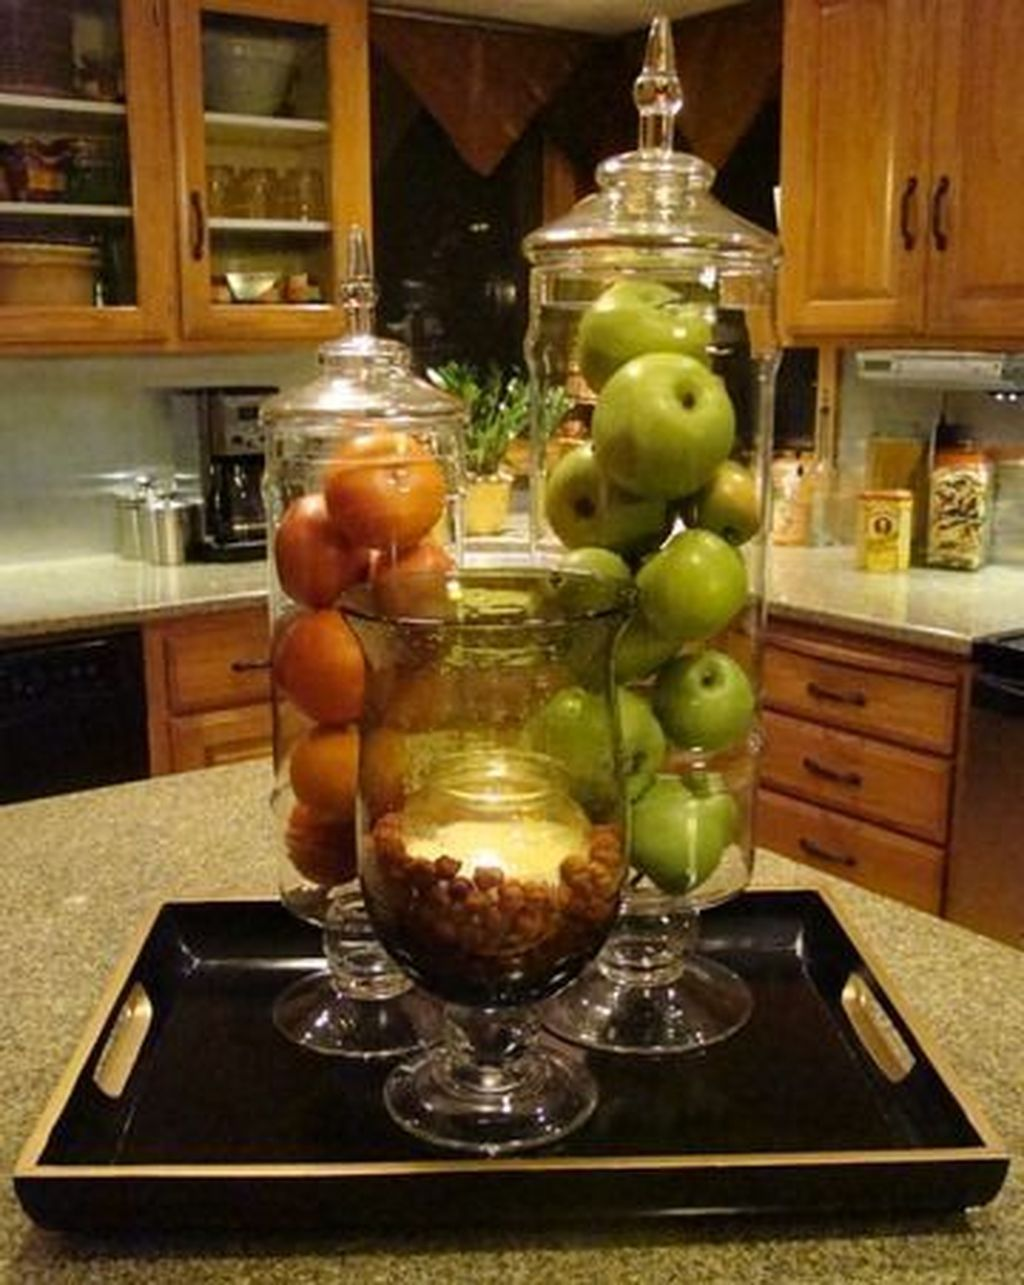 Cool 50 Best Ways To Decorate Your Apothecary Jars For Spring Kitchen Island Decor Apothecary Jars Decor Apothecary Jars Kitchen